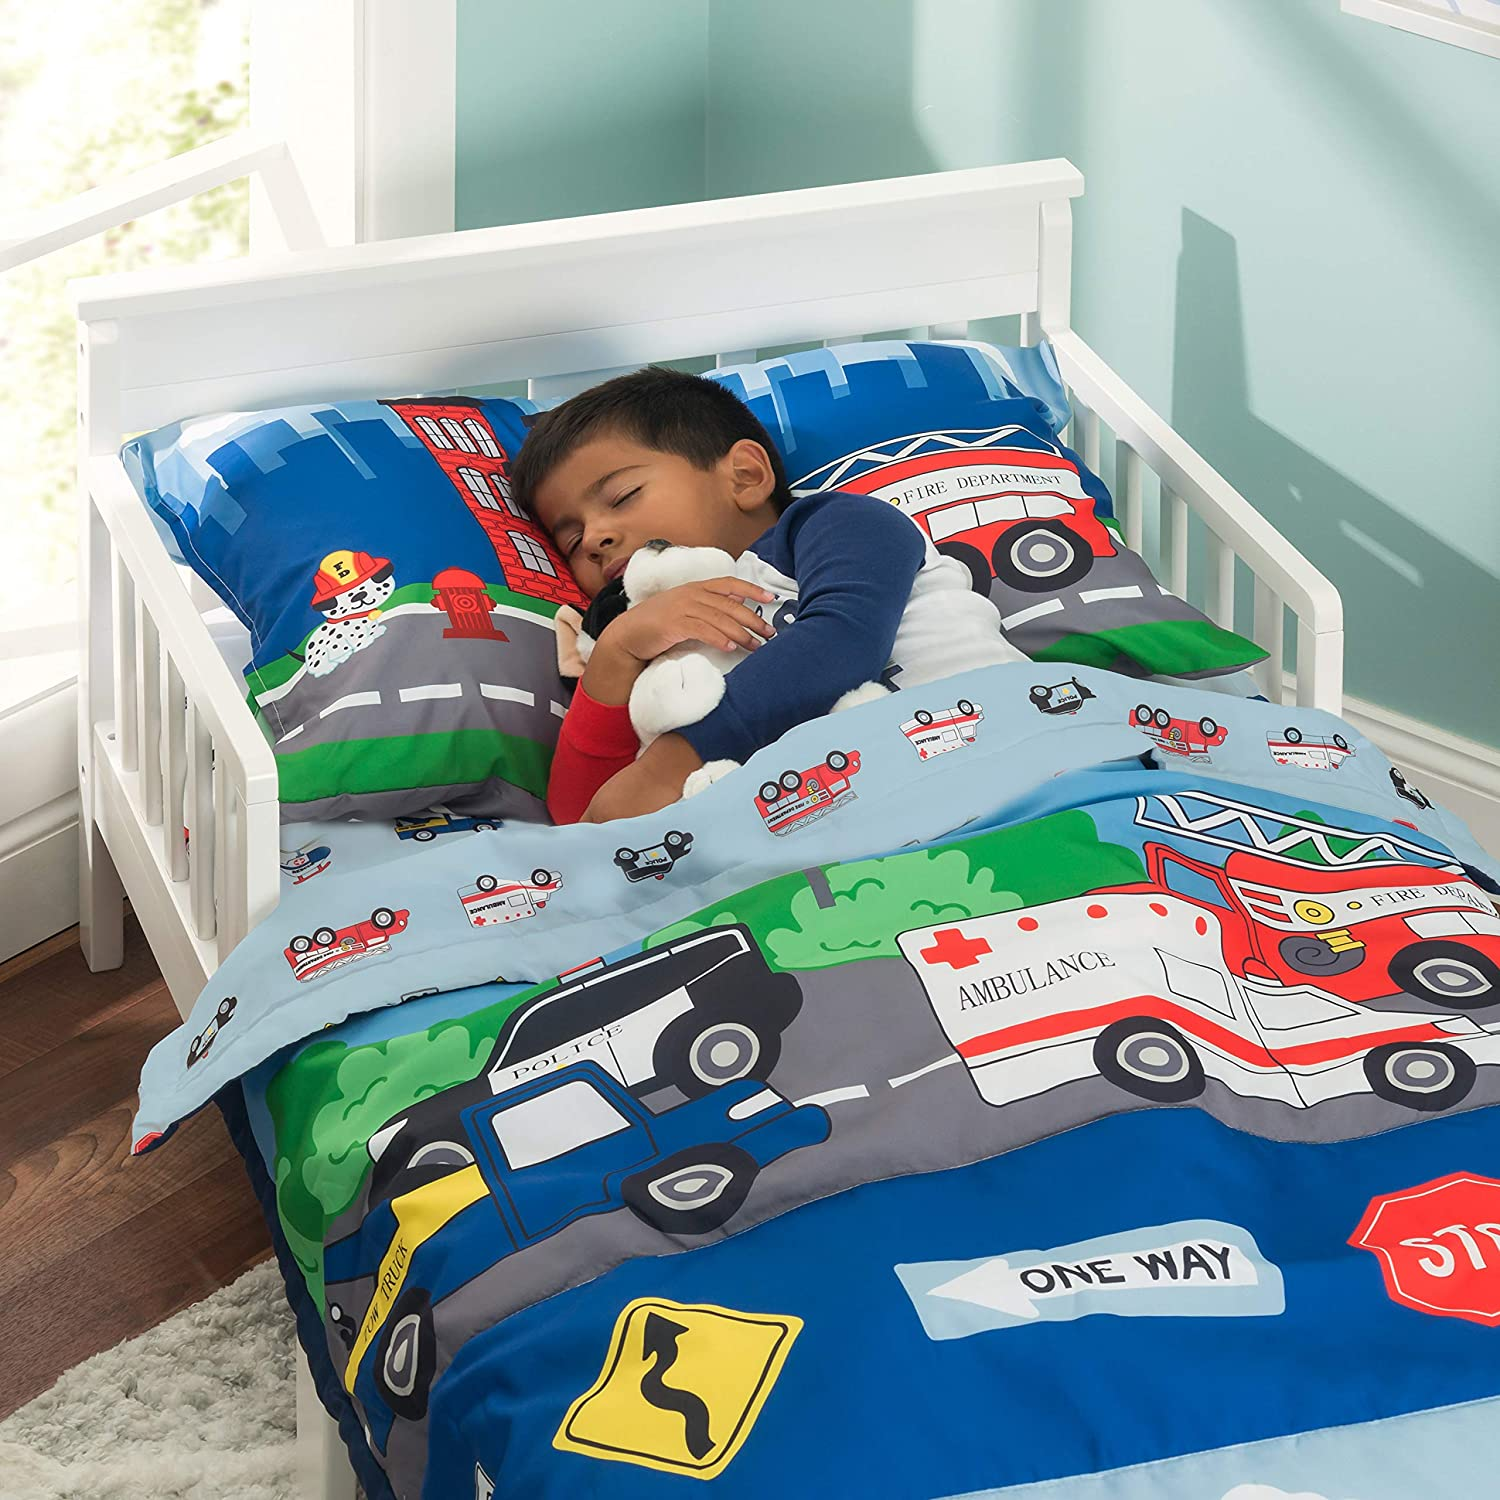 Includes Comforter Solid Grey EVERYDAY KIDS 4 Piece Toddler Bedding Set Fitted Sheet and Pillowcase Flat Sheet